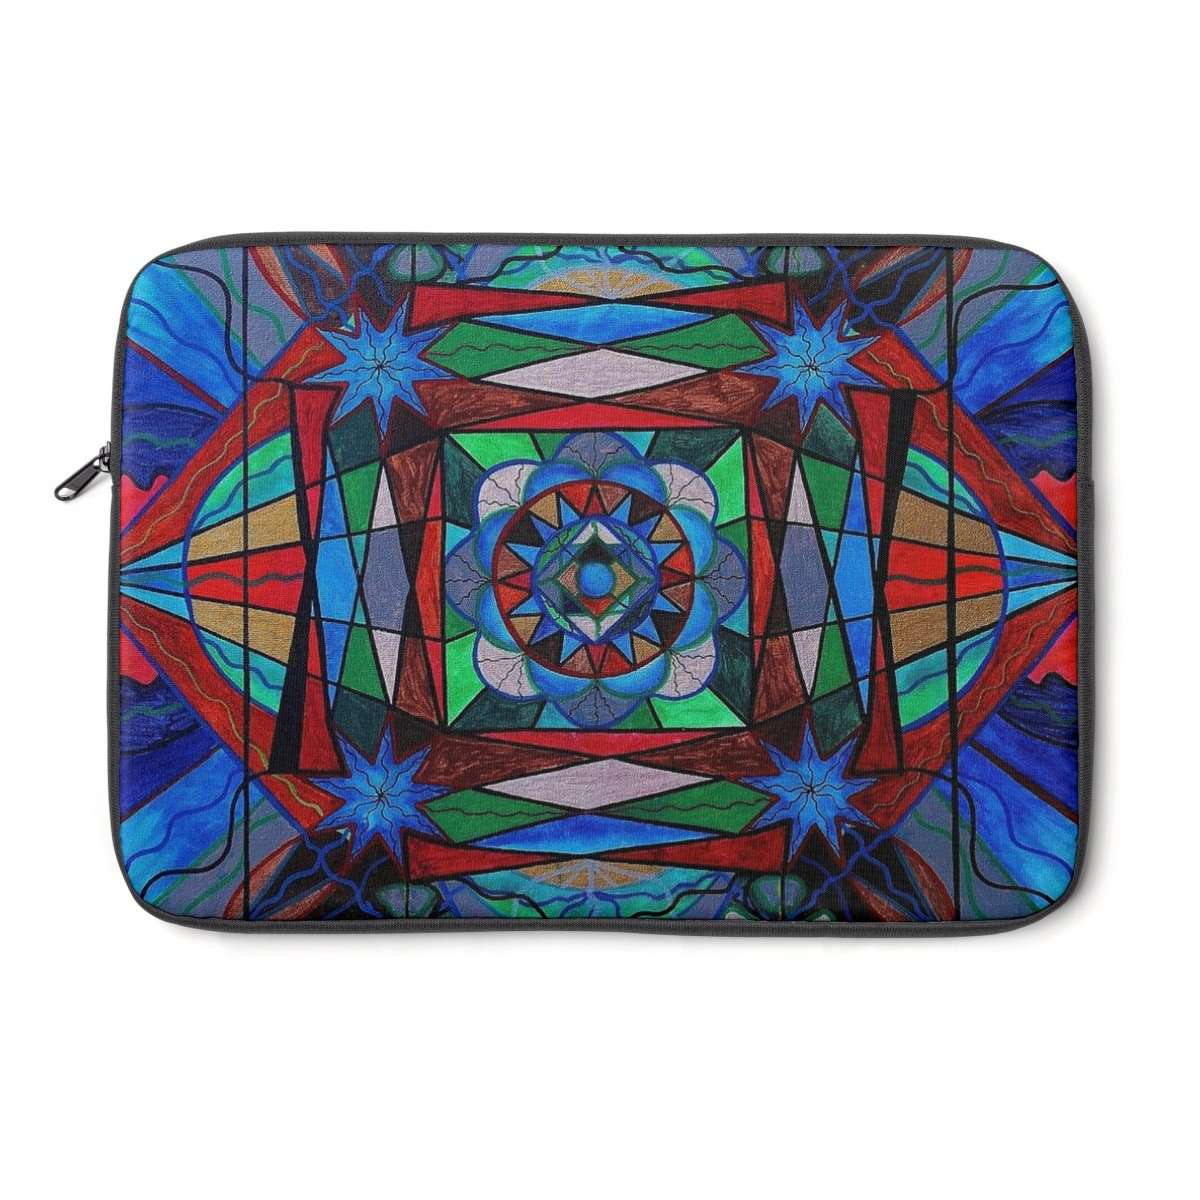 Sense of Security - Laptop Sleeve